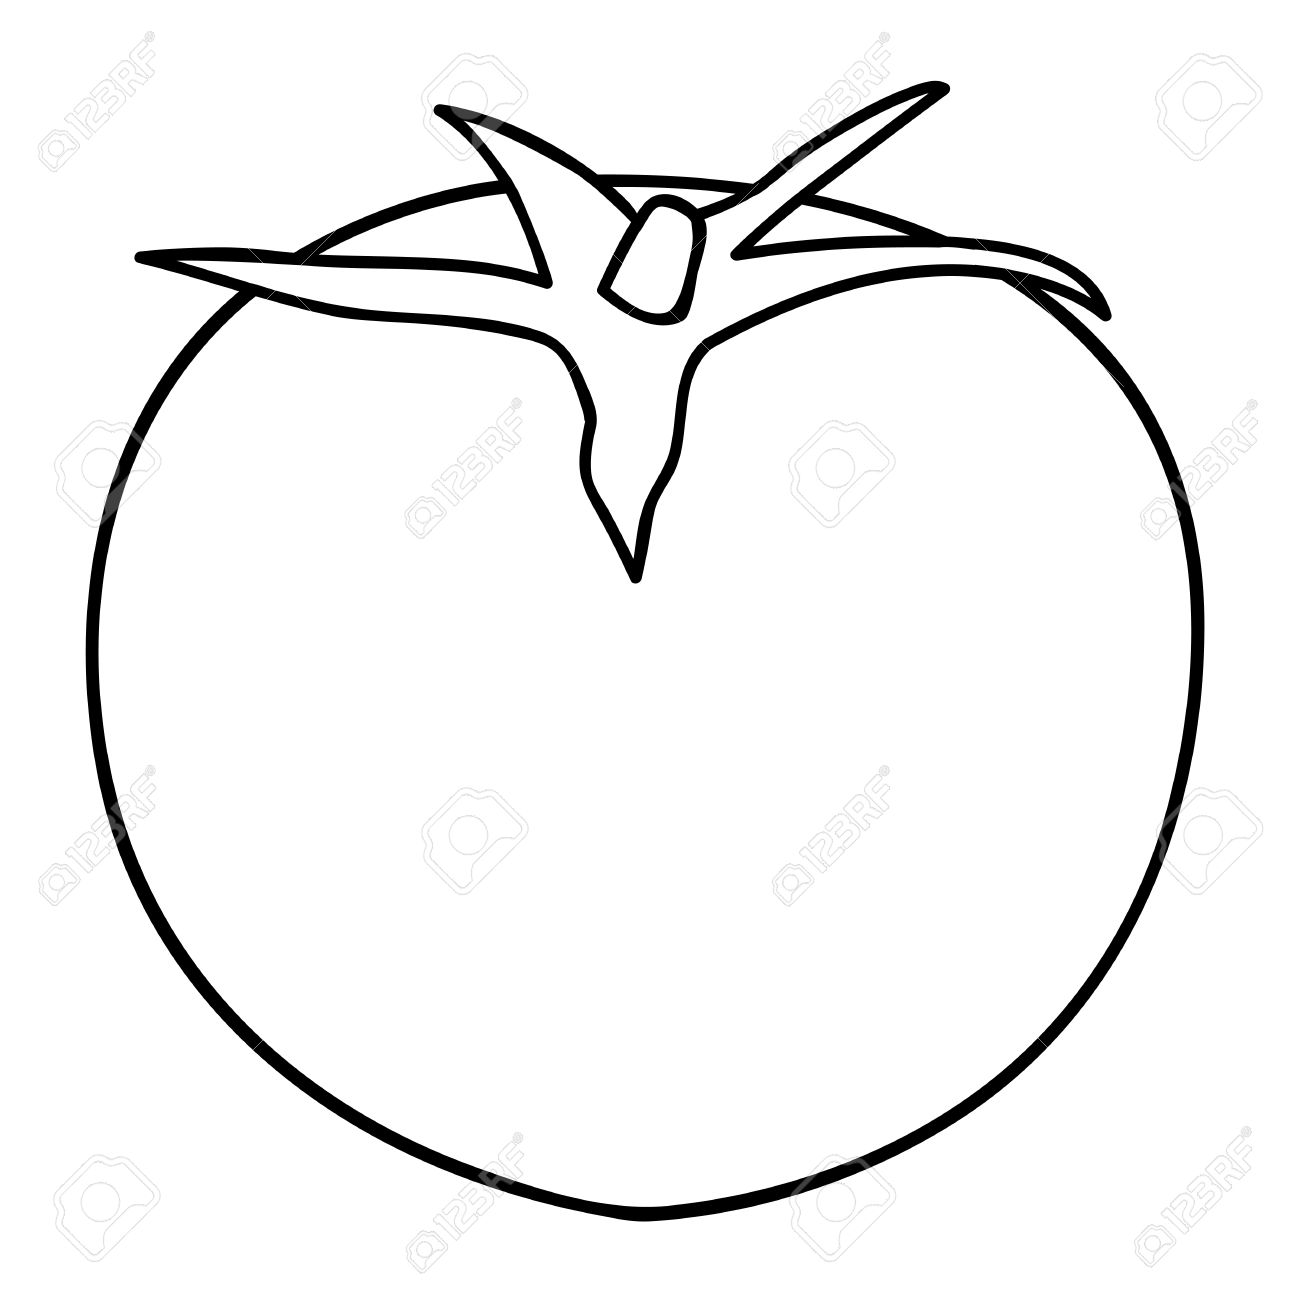 1300x1300 Sketch Line Drawing Of Tomato Isolated Illustration On White